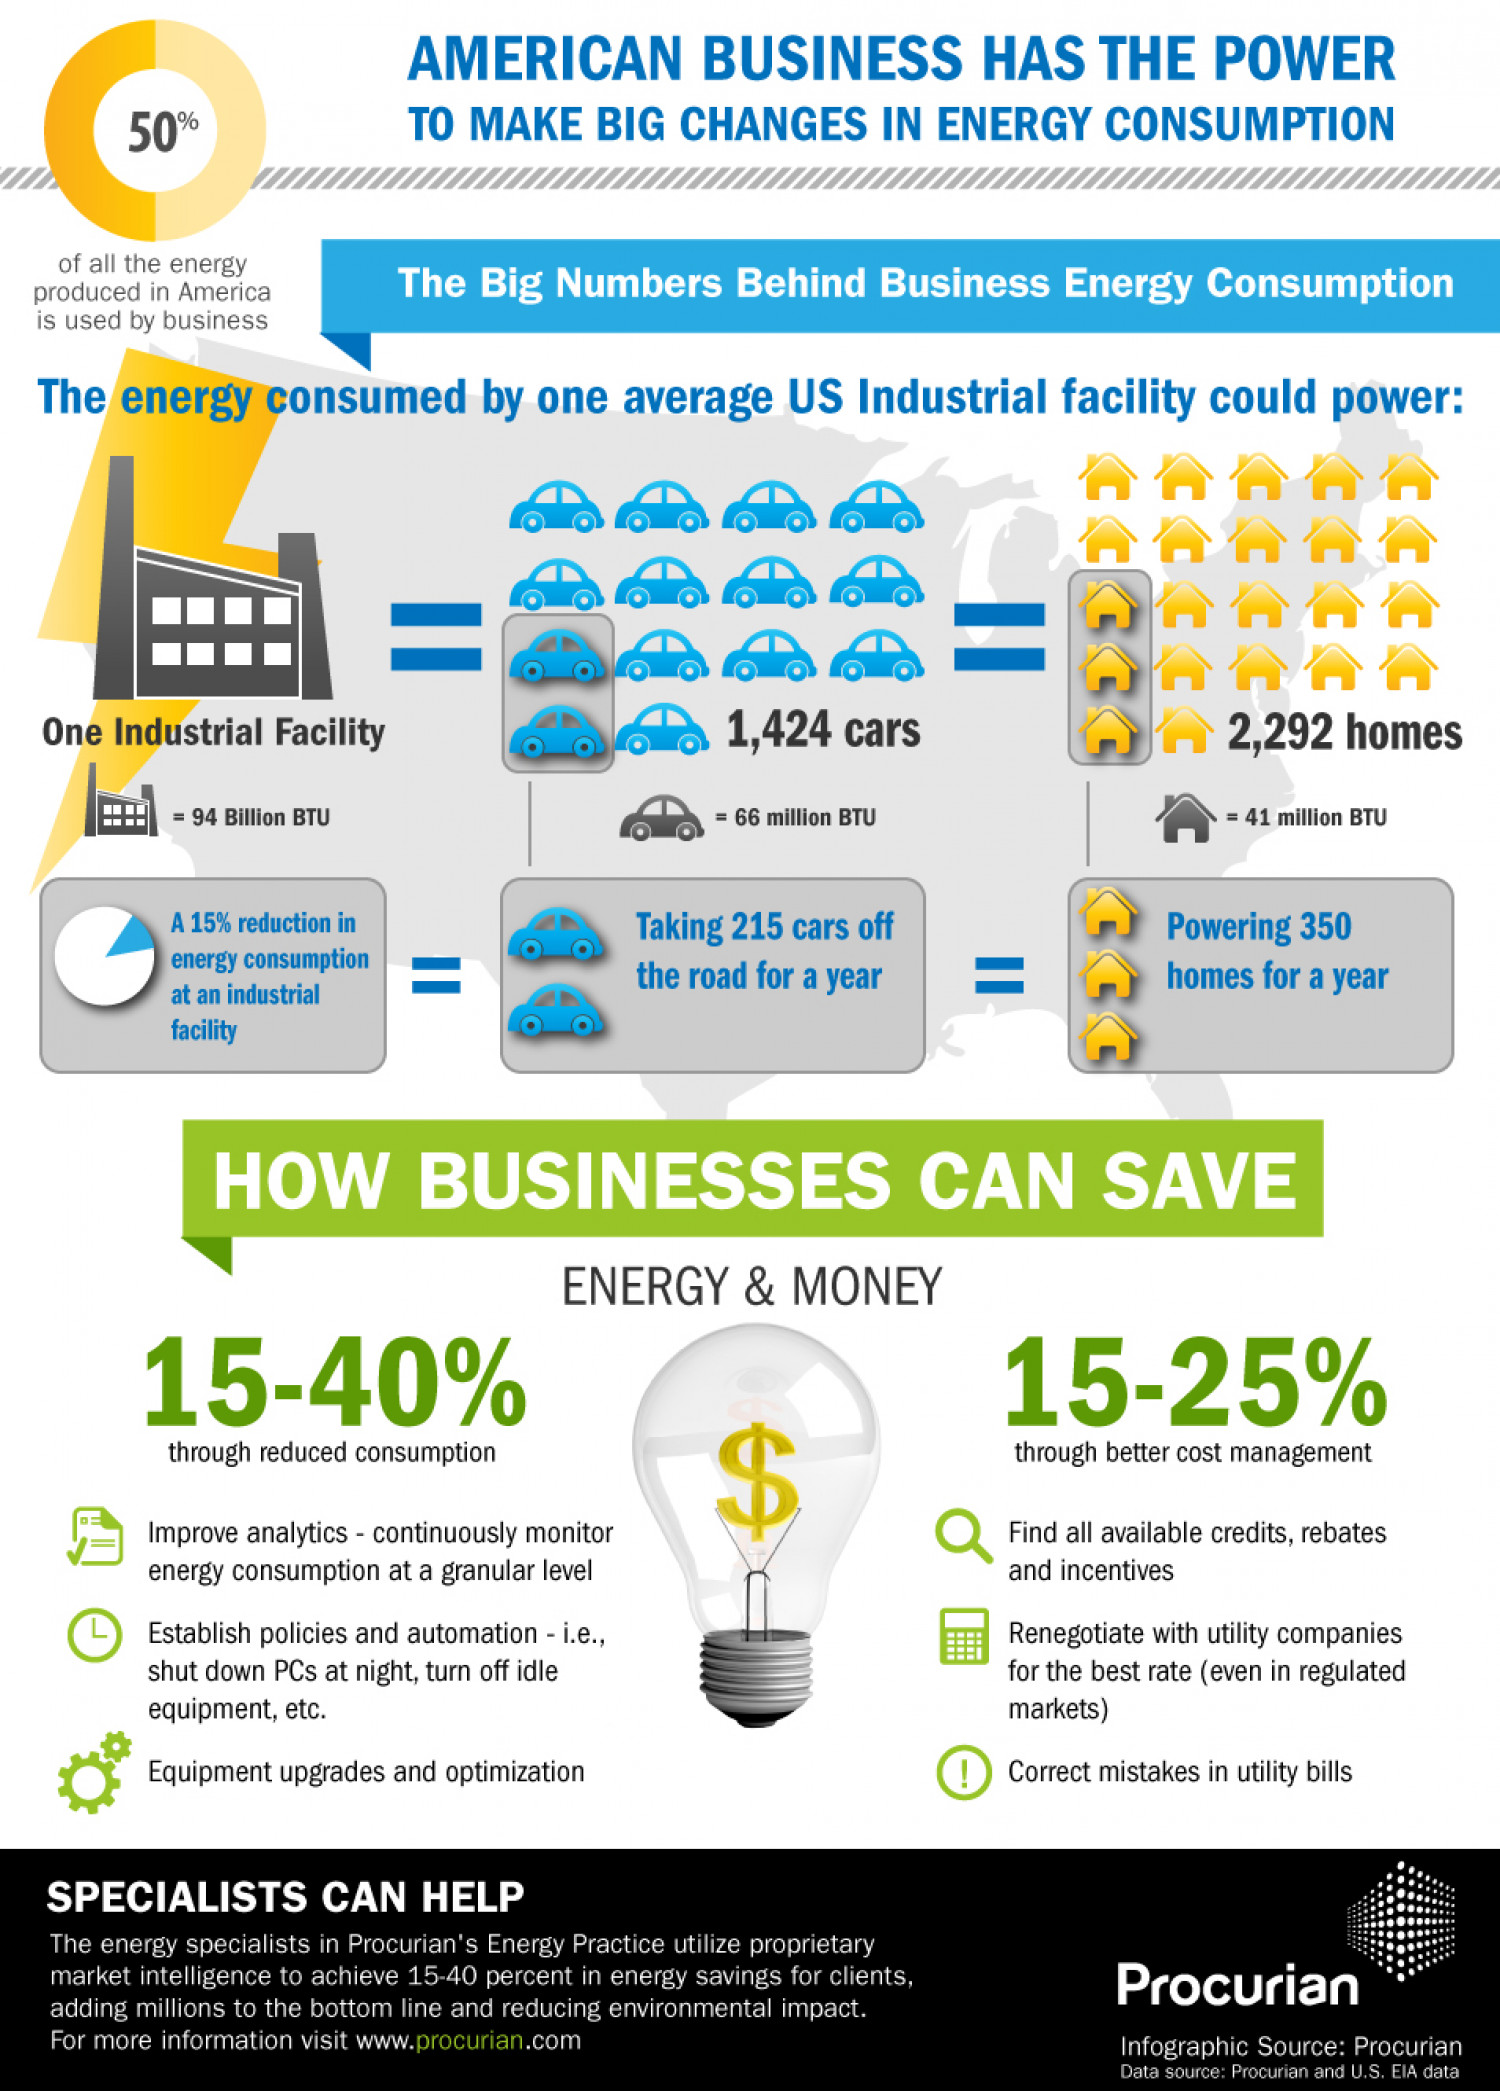 American Business Has the Power to Make Big Changes in Energy Consumption Infographic